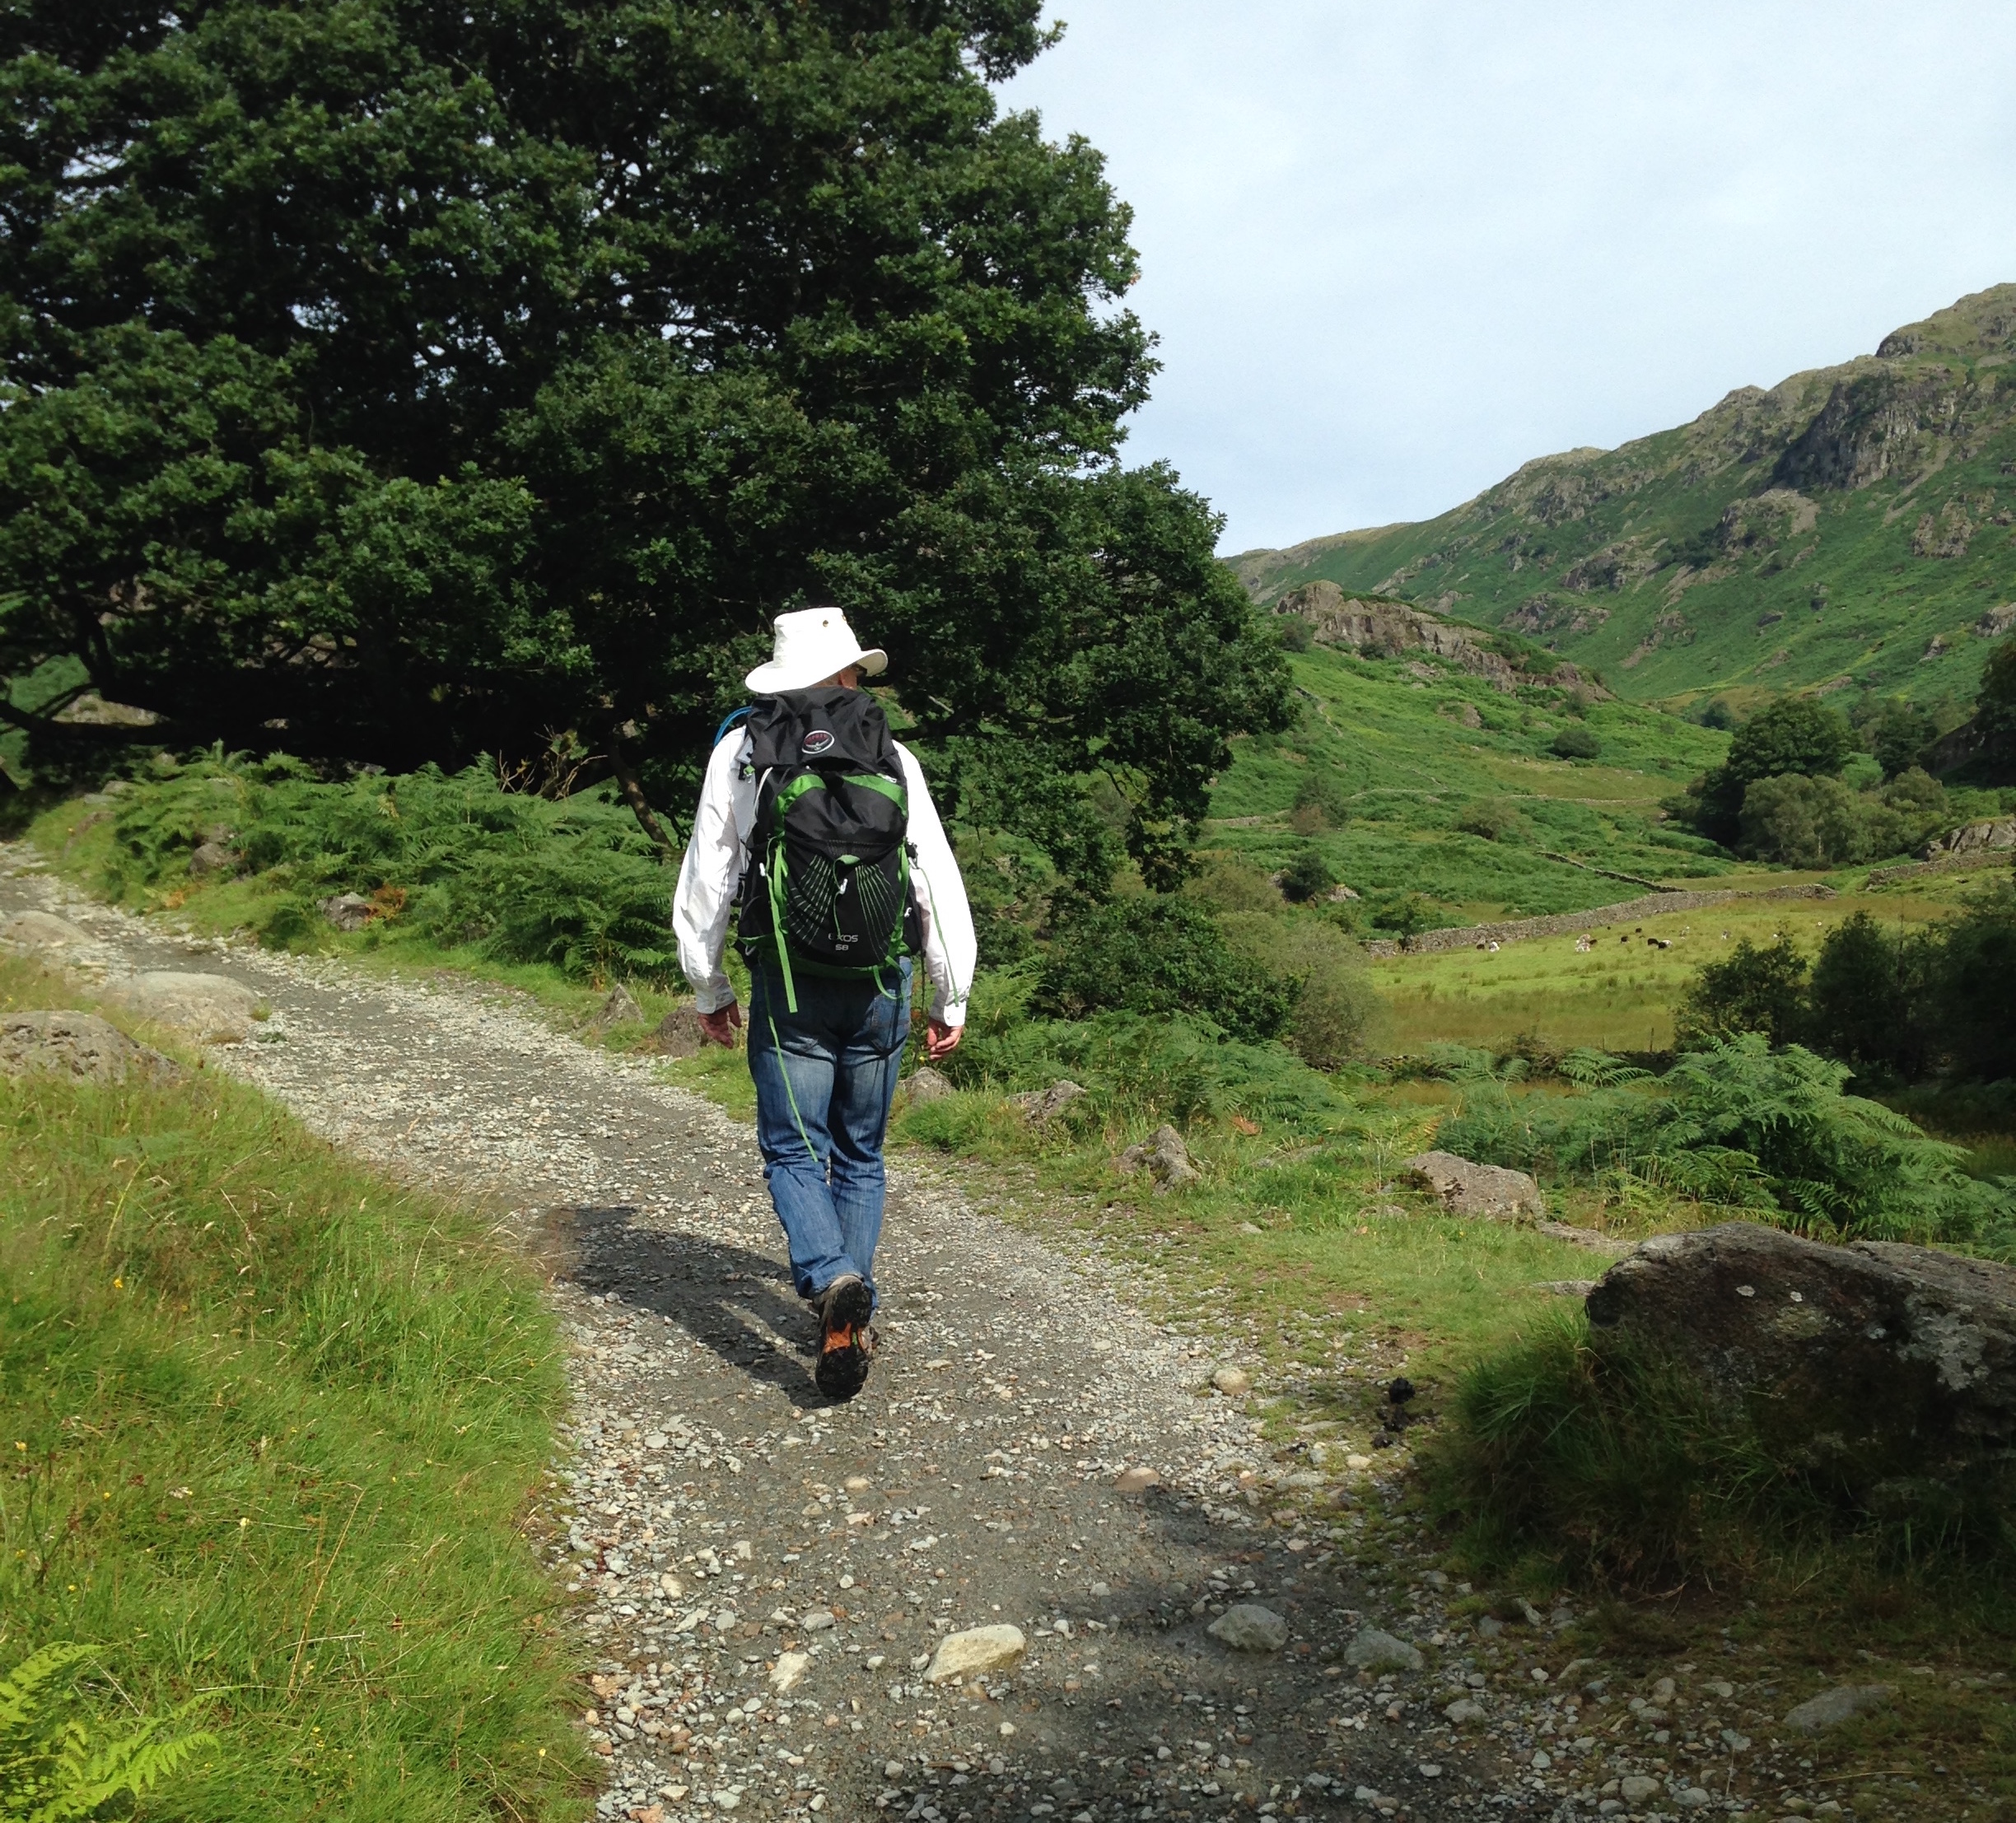 Doug on a hike in the Lake District of England (8/5/16).